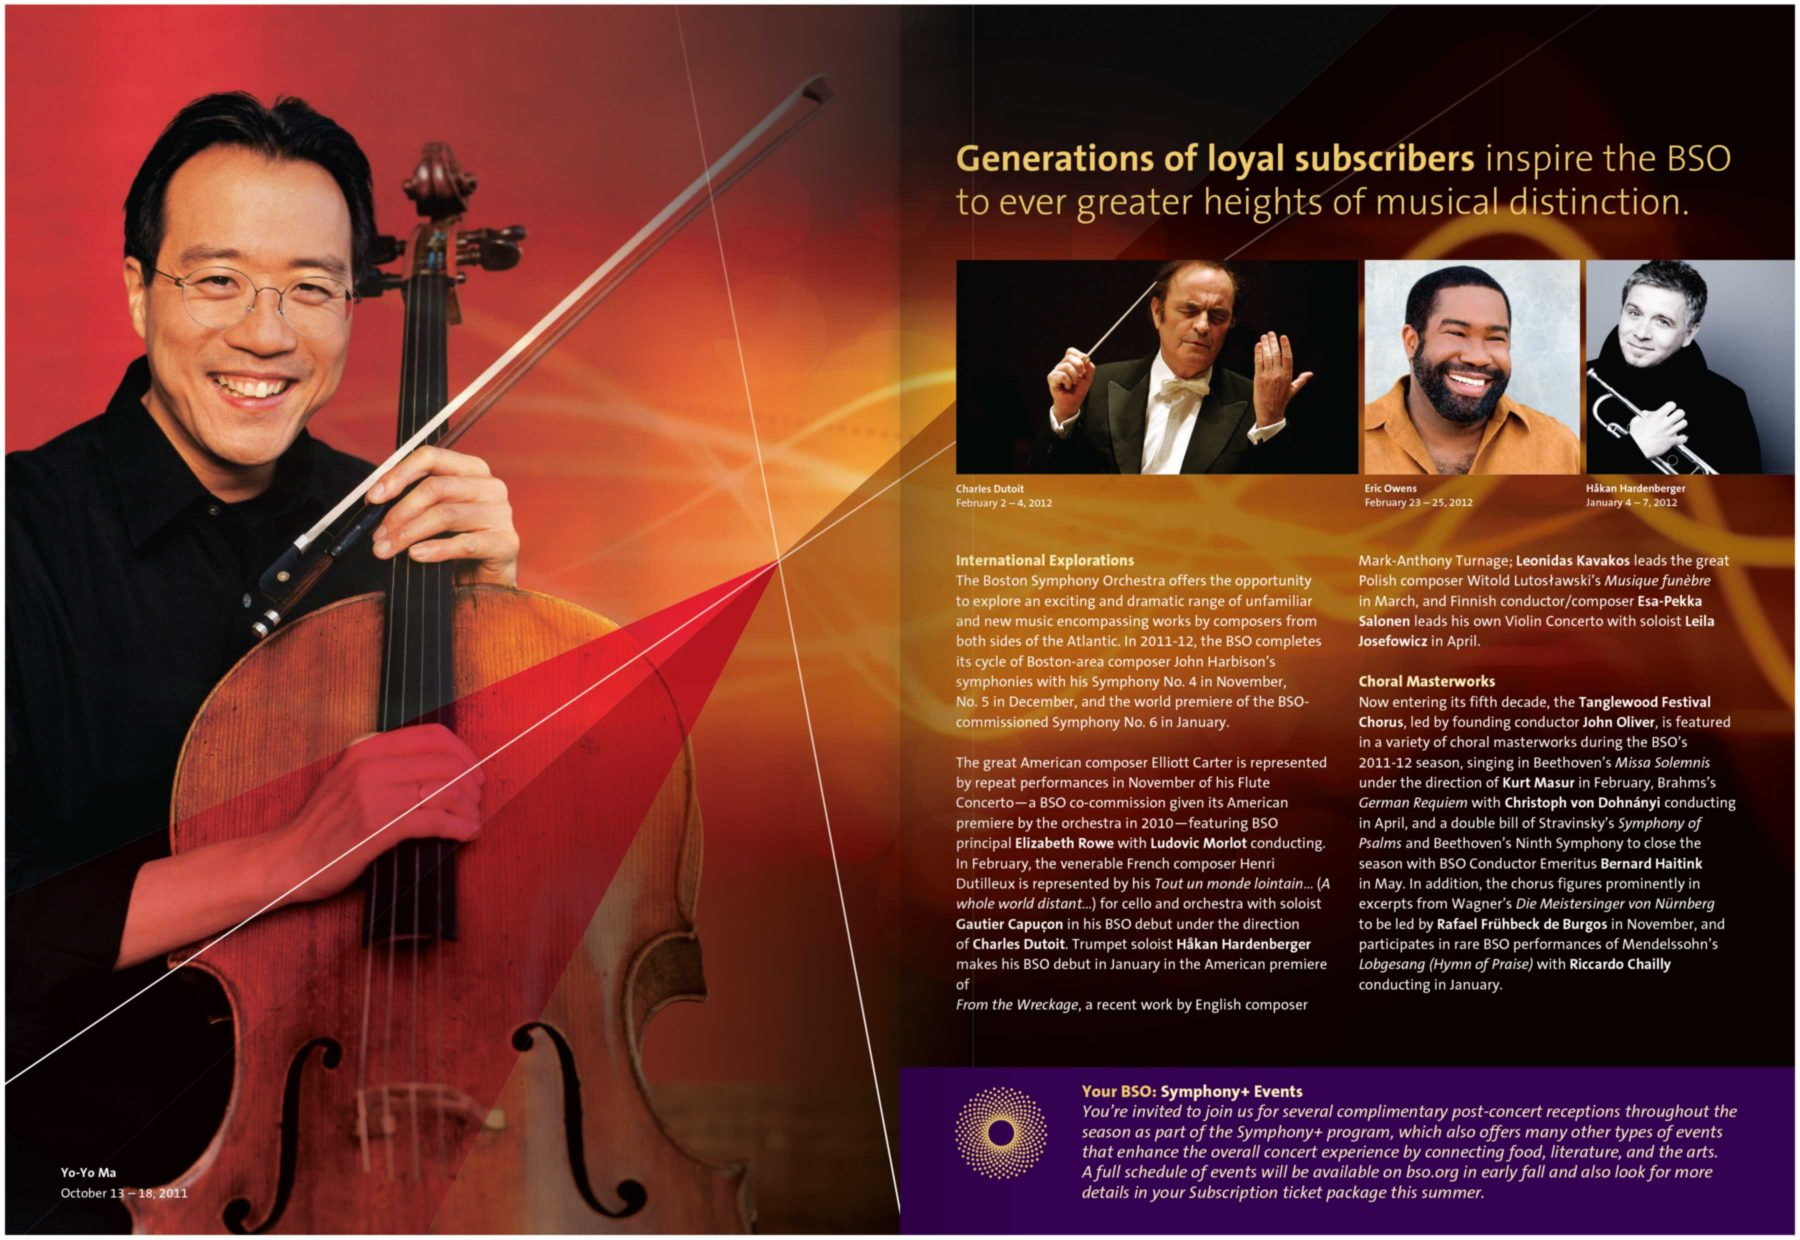 Brochure page: Generations of loyal subscribers inspire the BSO to ever greater heights of musical distinction